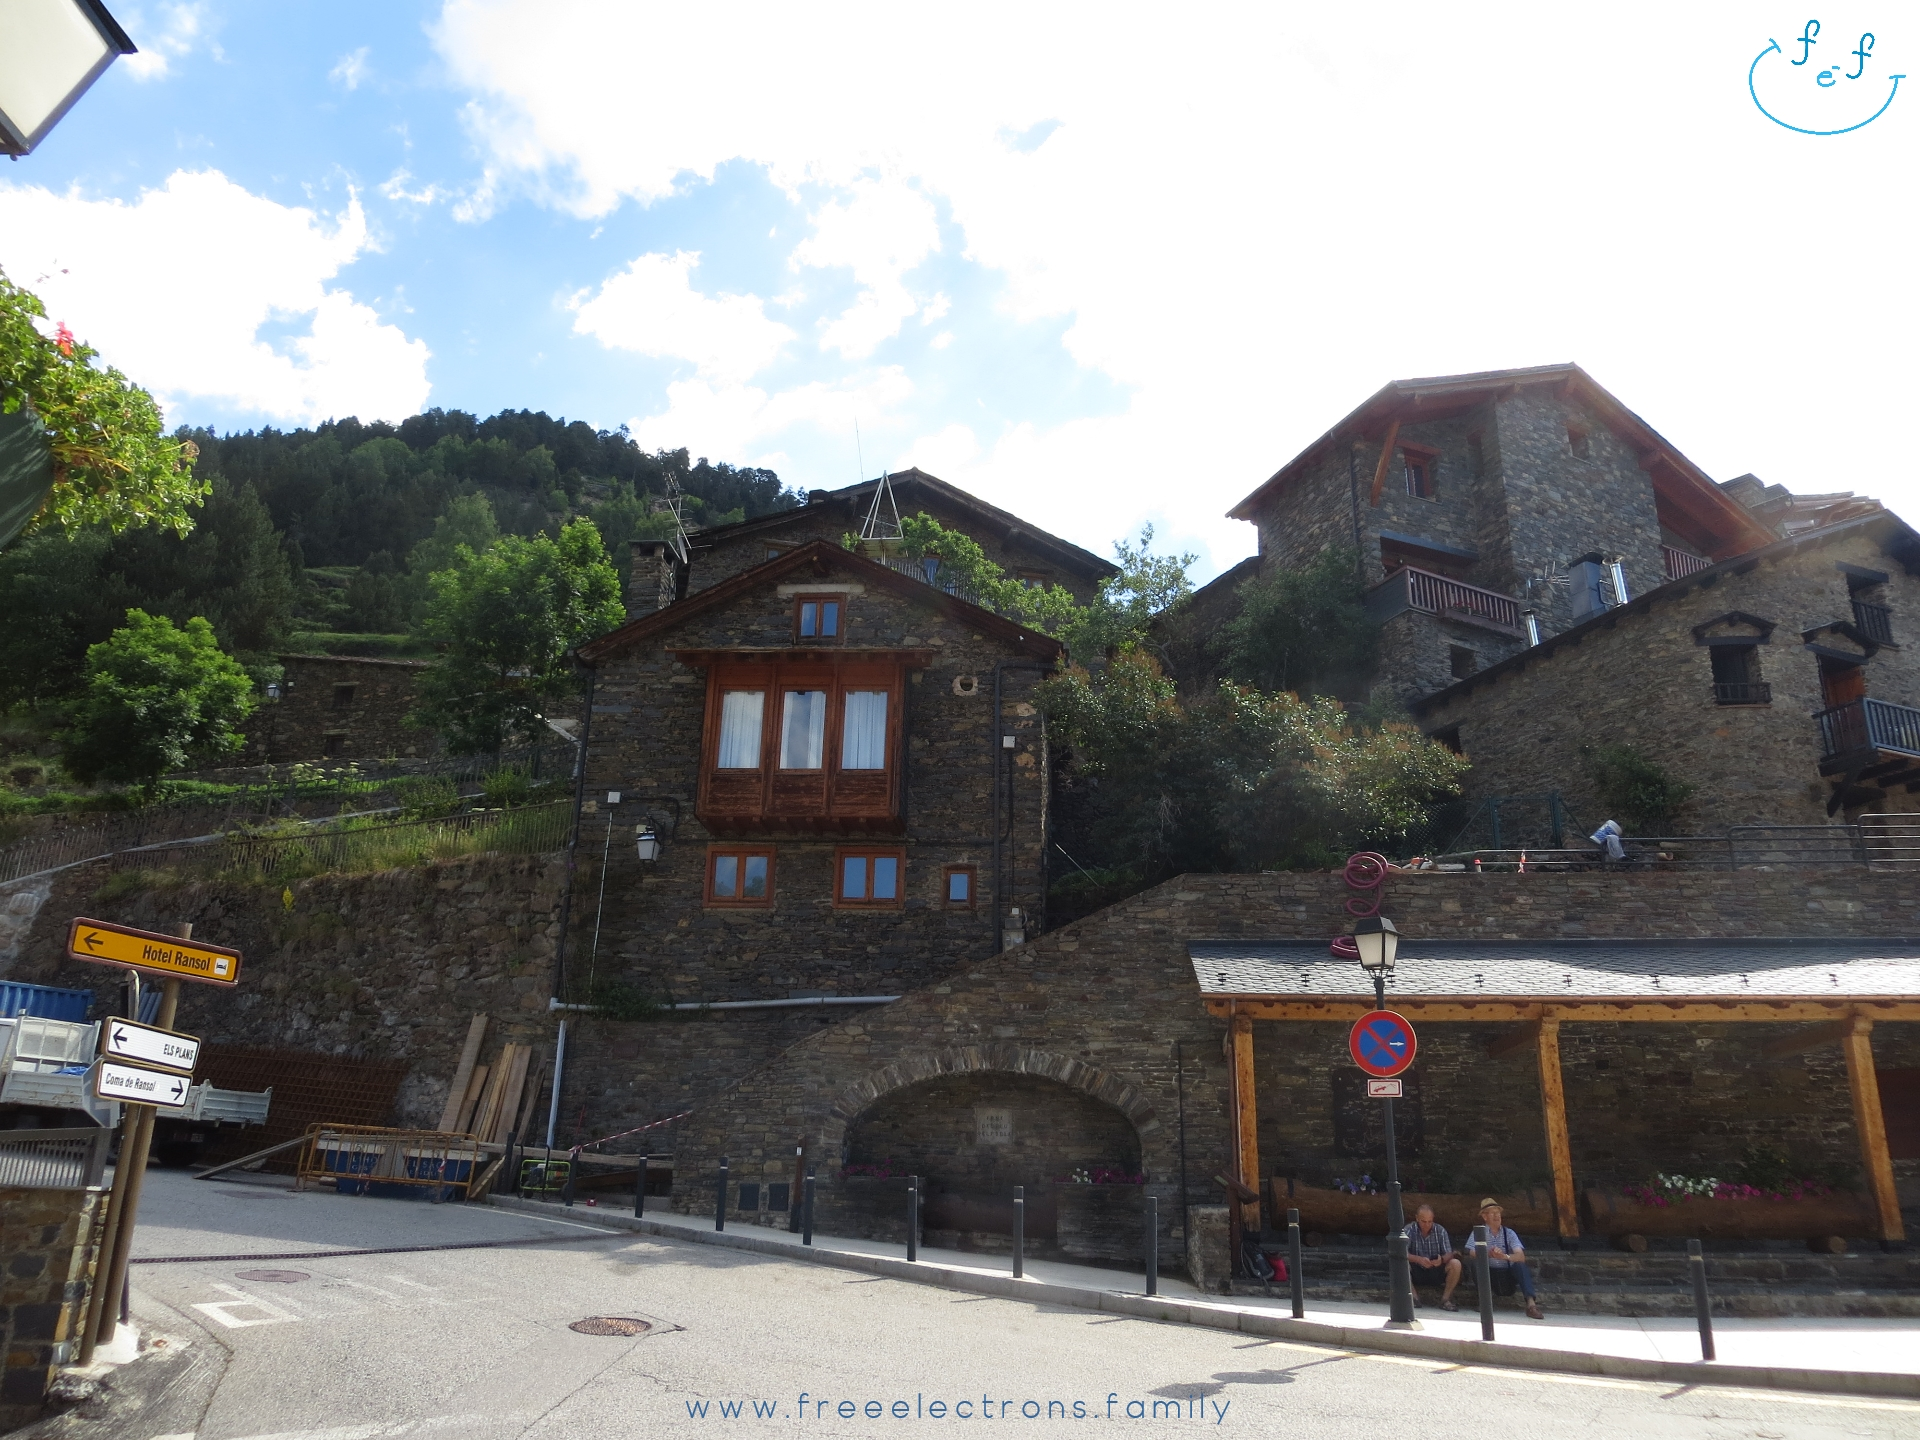 #FreeElectrons.Family - camping road trip Europe, Andorra Canillo.  Two elderly men sit on stone bench at a covered bus station; traditional Andorran stone houses in the background, under bright sky.